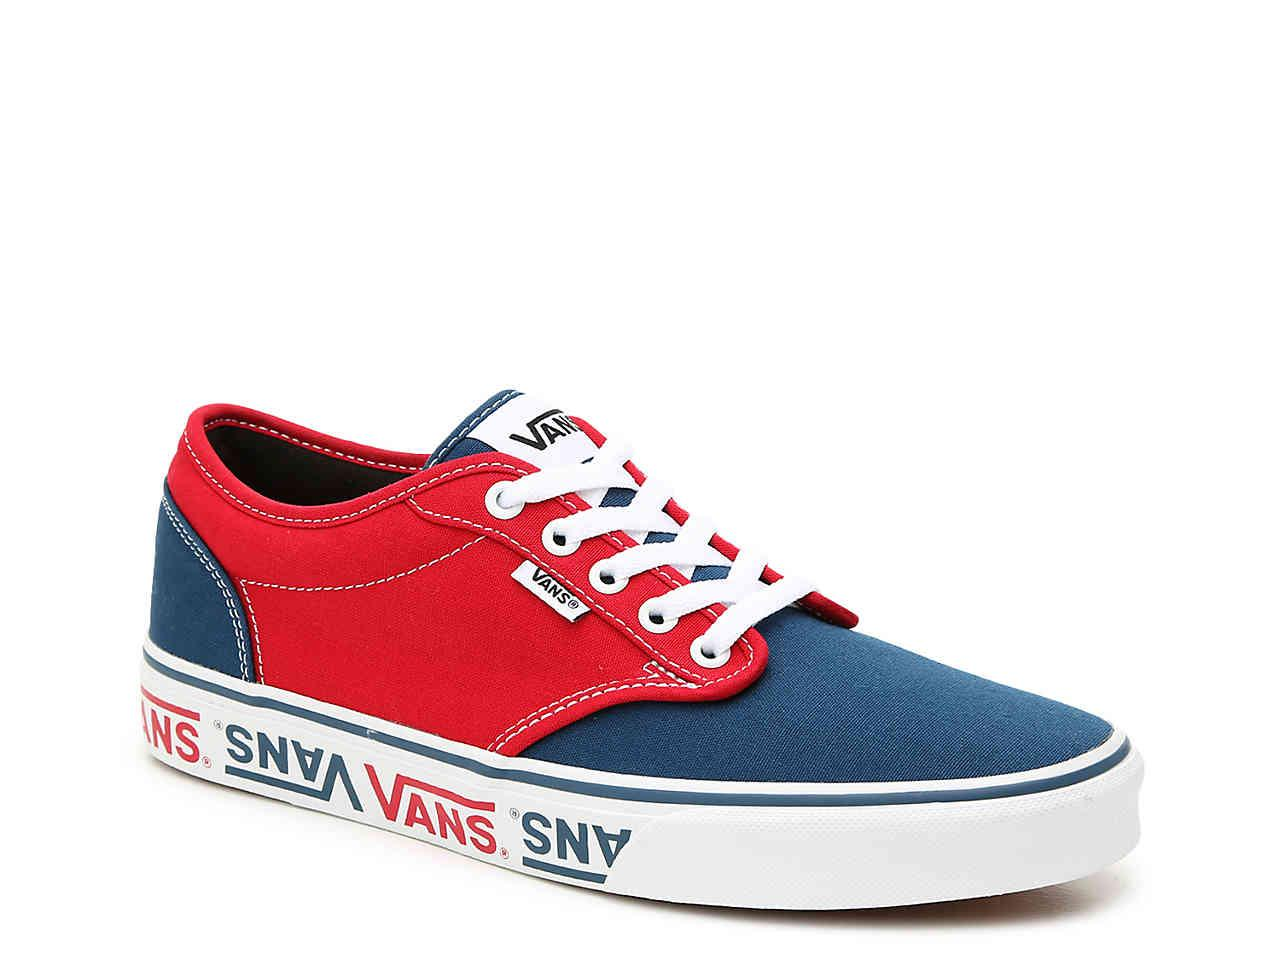 b57644efe17 Lyst - Vans Atwood Logo Sneaker in Red for Men